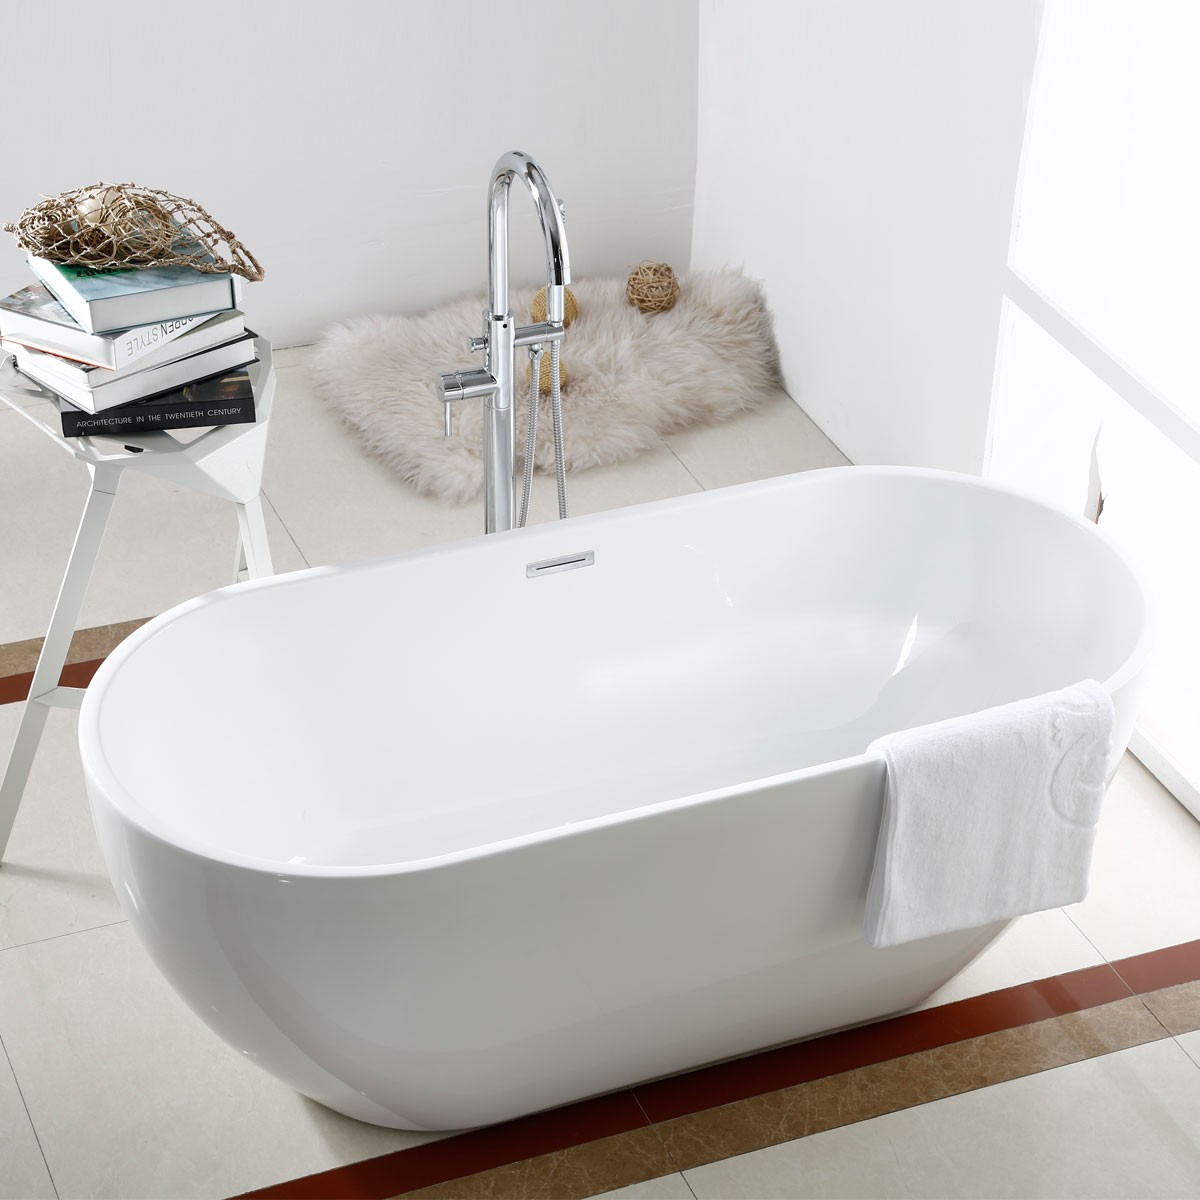 60 In Pure White Acrylic Seamless Freestanding Bathtub (DK-PW-11572)